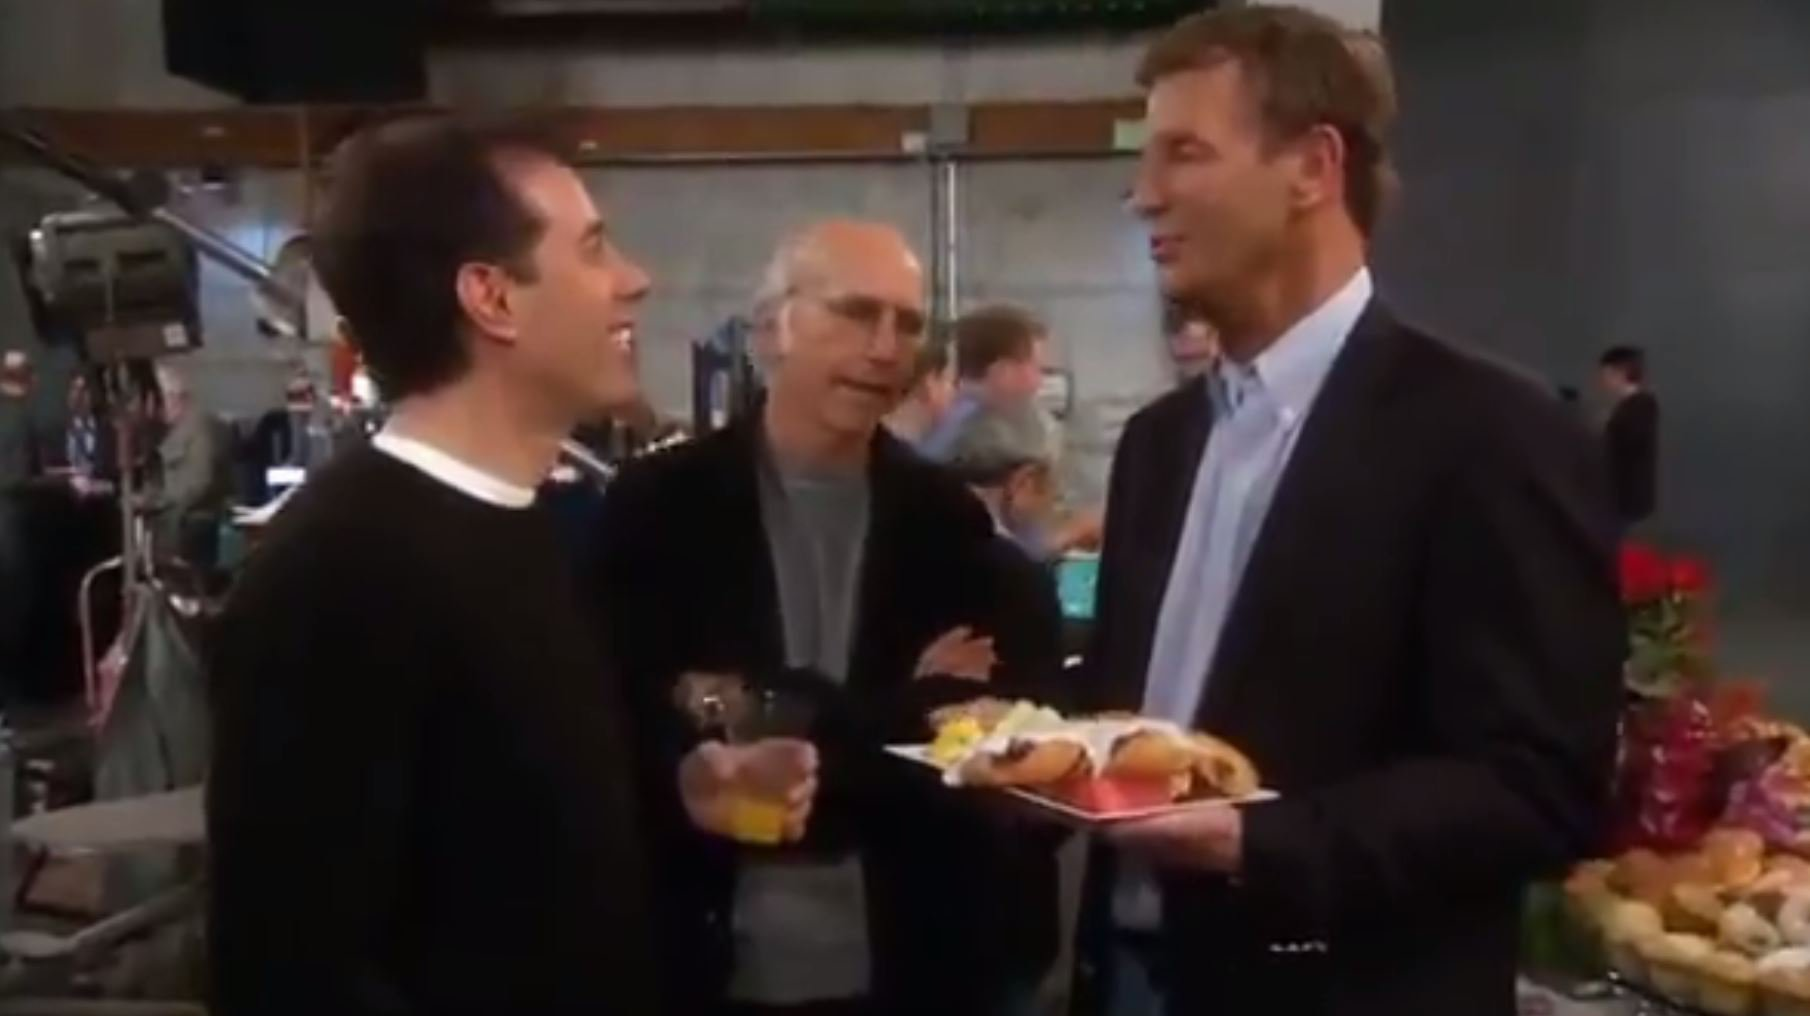 Bob Einstein's too-dirty joke that had Jerry Seinfeld nearly in tears on Curb Your Enthusiasm